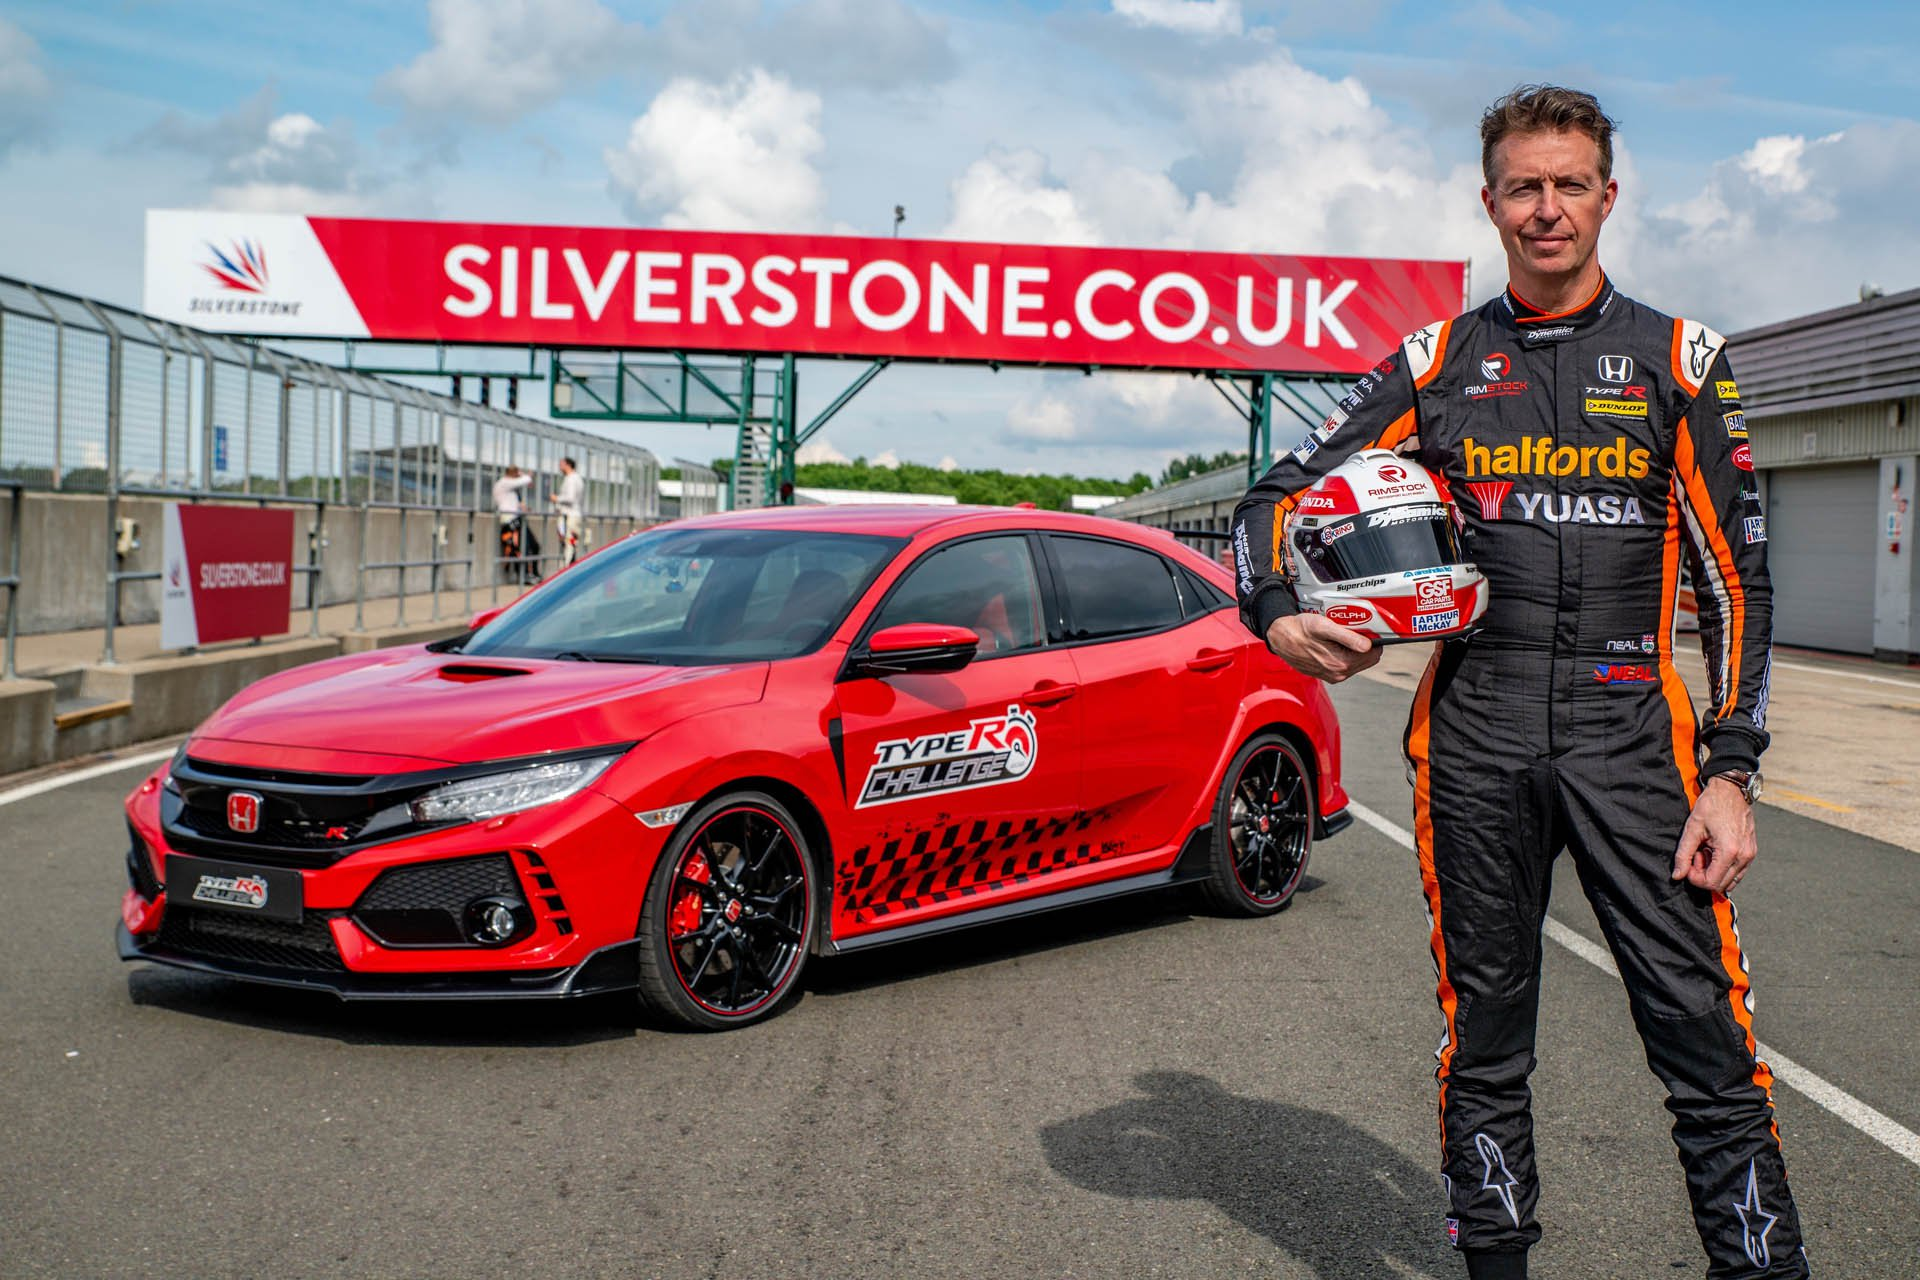 Honda Civic Type R Silverstone Record (2)